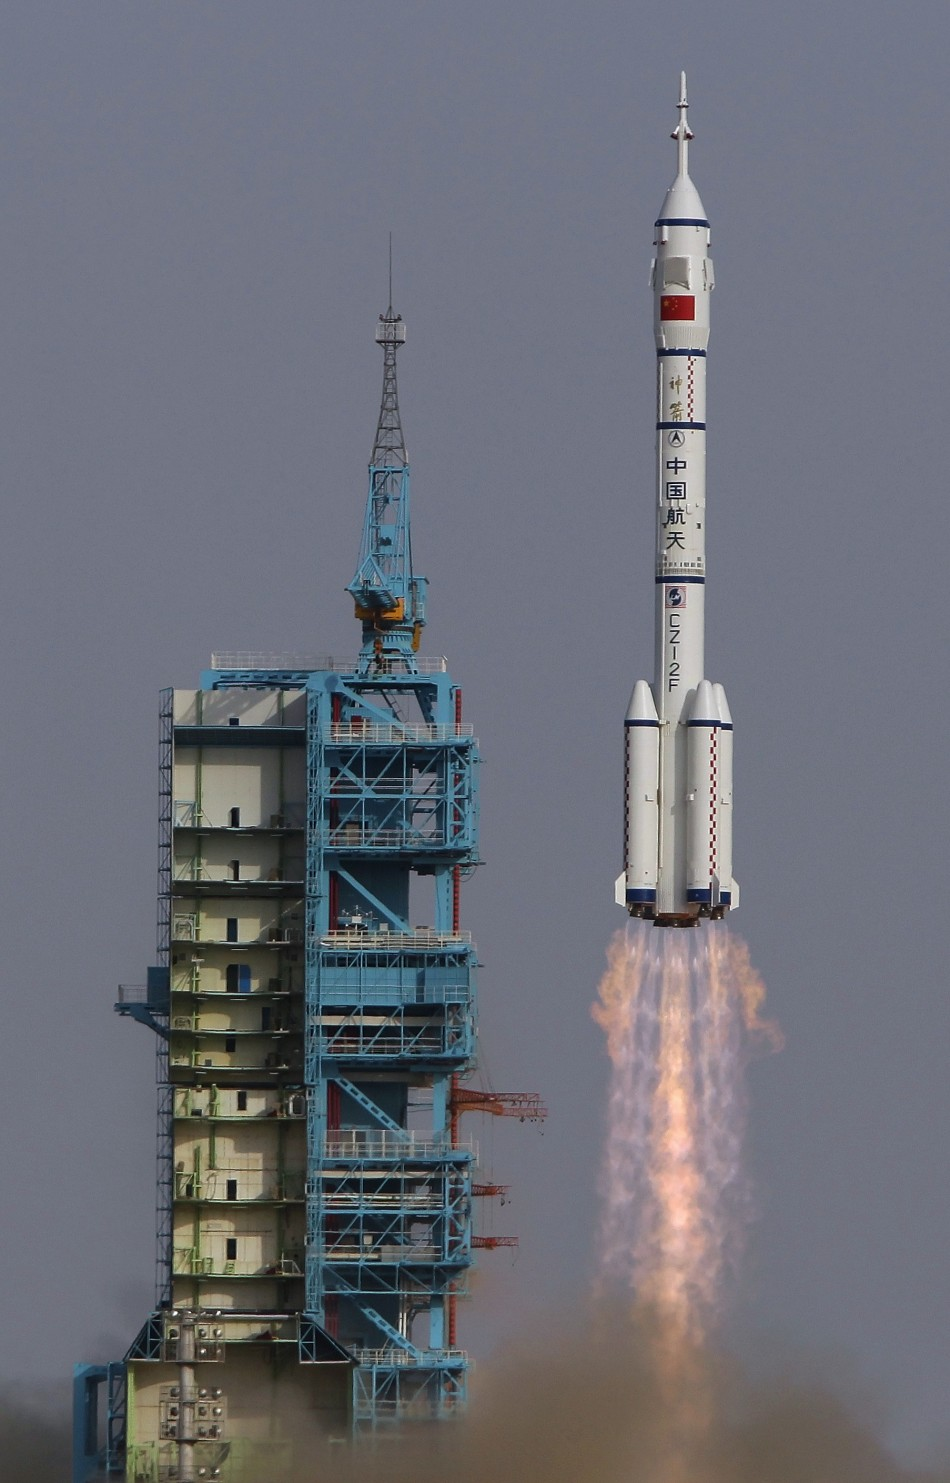 The Long March II-F rocket loaded with a Shenzhou-9 manned spacecraft